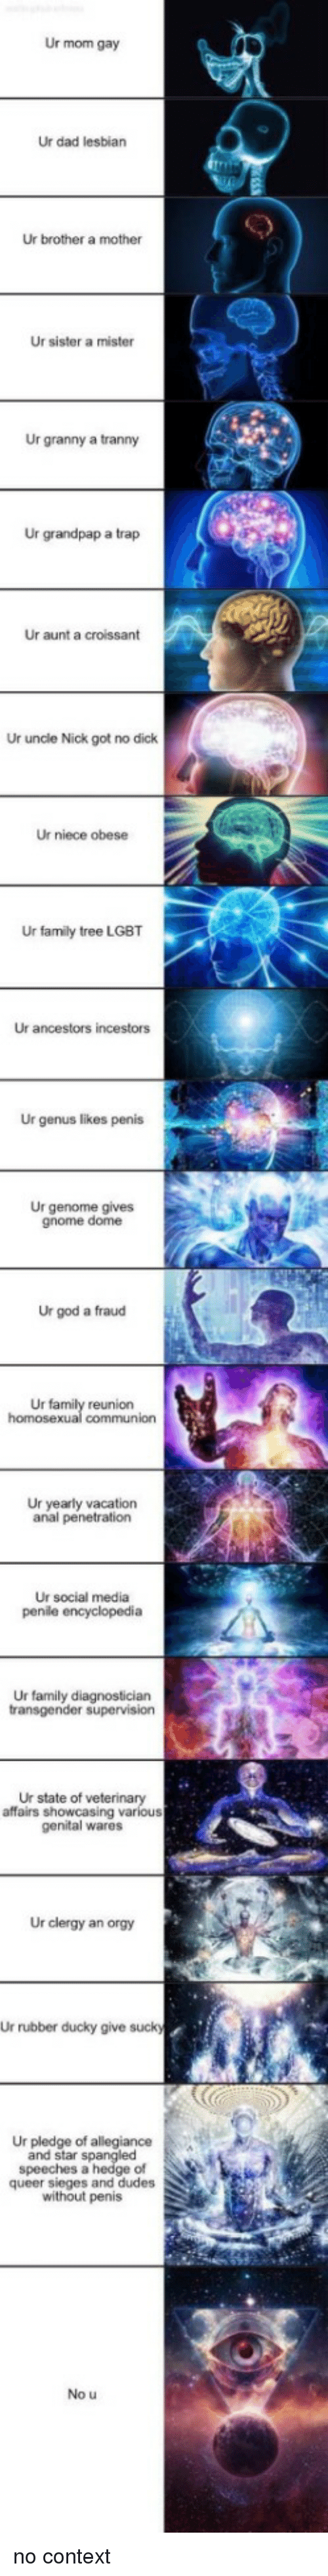 Speeches: Ur mom gay  Ur dad lesbian  Ur brother a mother  Ur sister a mister  Ur granny a tranny  Ur grandpap a trap  Ur aunt a croissant  Ur uncle Nick got no dick  Ur niece obese  Ur family tree LGBT  Ur ancestors incestors  Ur genus likes penis  Ur genome gives  gnome dome  Ur god a fraud  Ur  reunion  Ur yearly vacation  anal penetration  Ur social media  Ur family diagnostician  Ur state of veterinary  affairs showcasing various  genital wares  Ur clergy an orgy  Ur rubber ducky give suck  Ur pledge of allegiance  and star spangled  speeches a hedge of  queer sieges and dudes  without penis  No u no context